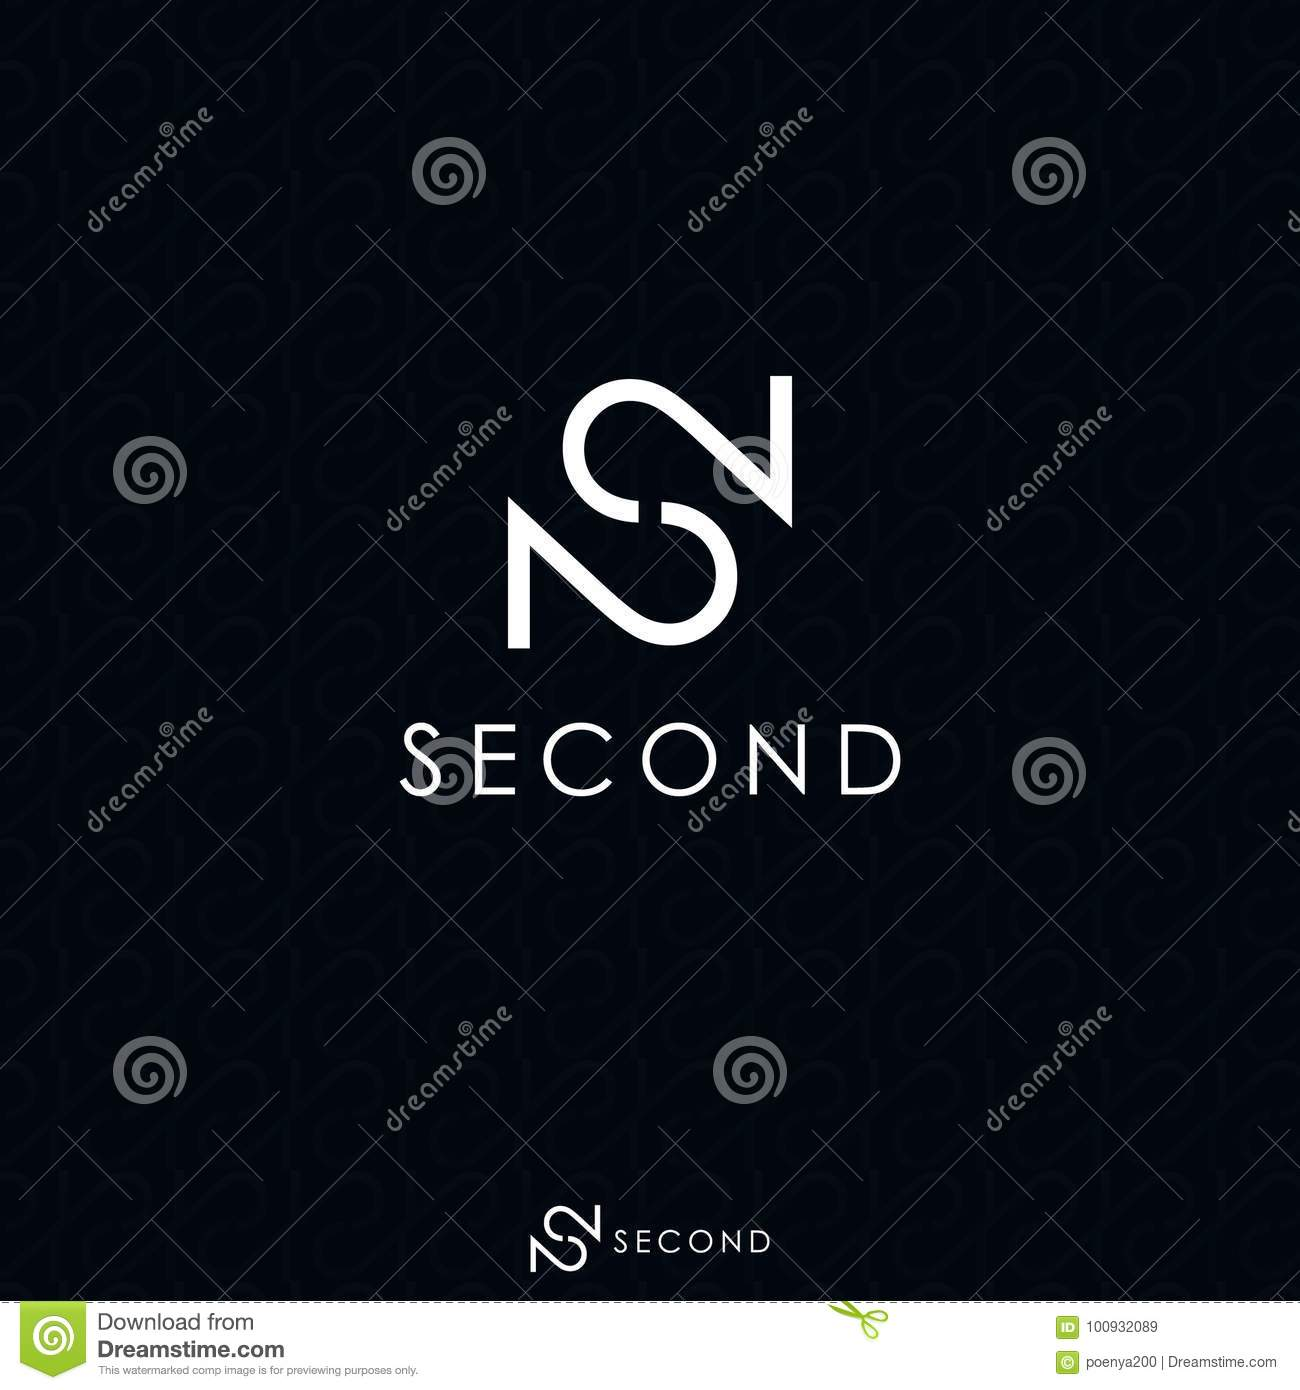 4f383c58e ... 2 logo concept with black background shadow pattern. Initial letter and  number logo. Template logo for brand, fashion, premium product or services.